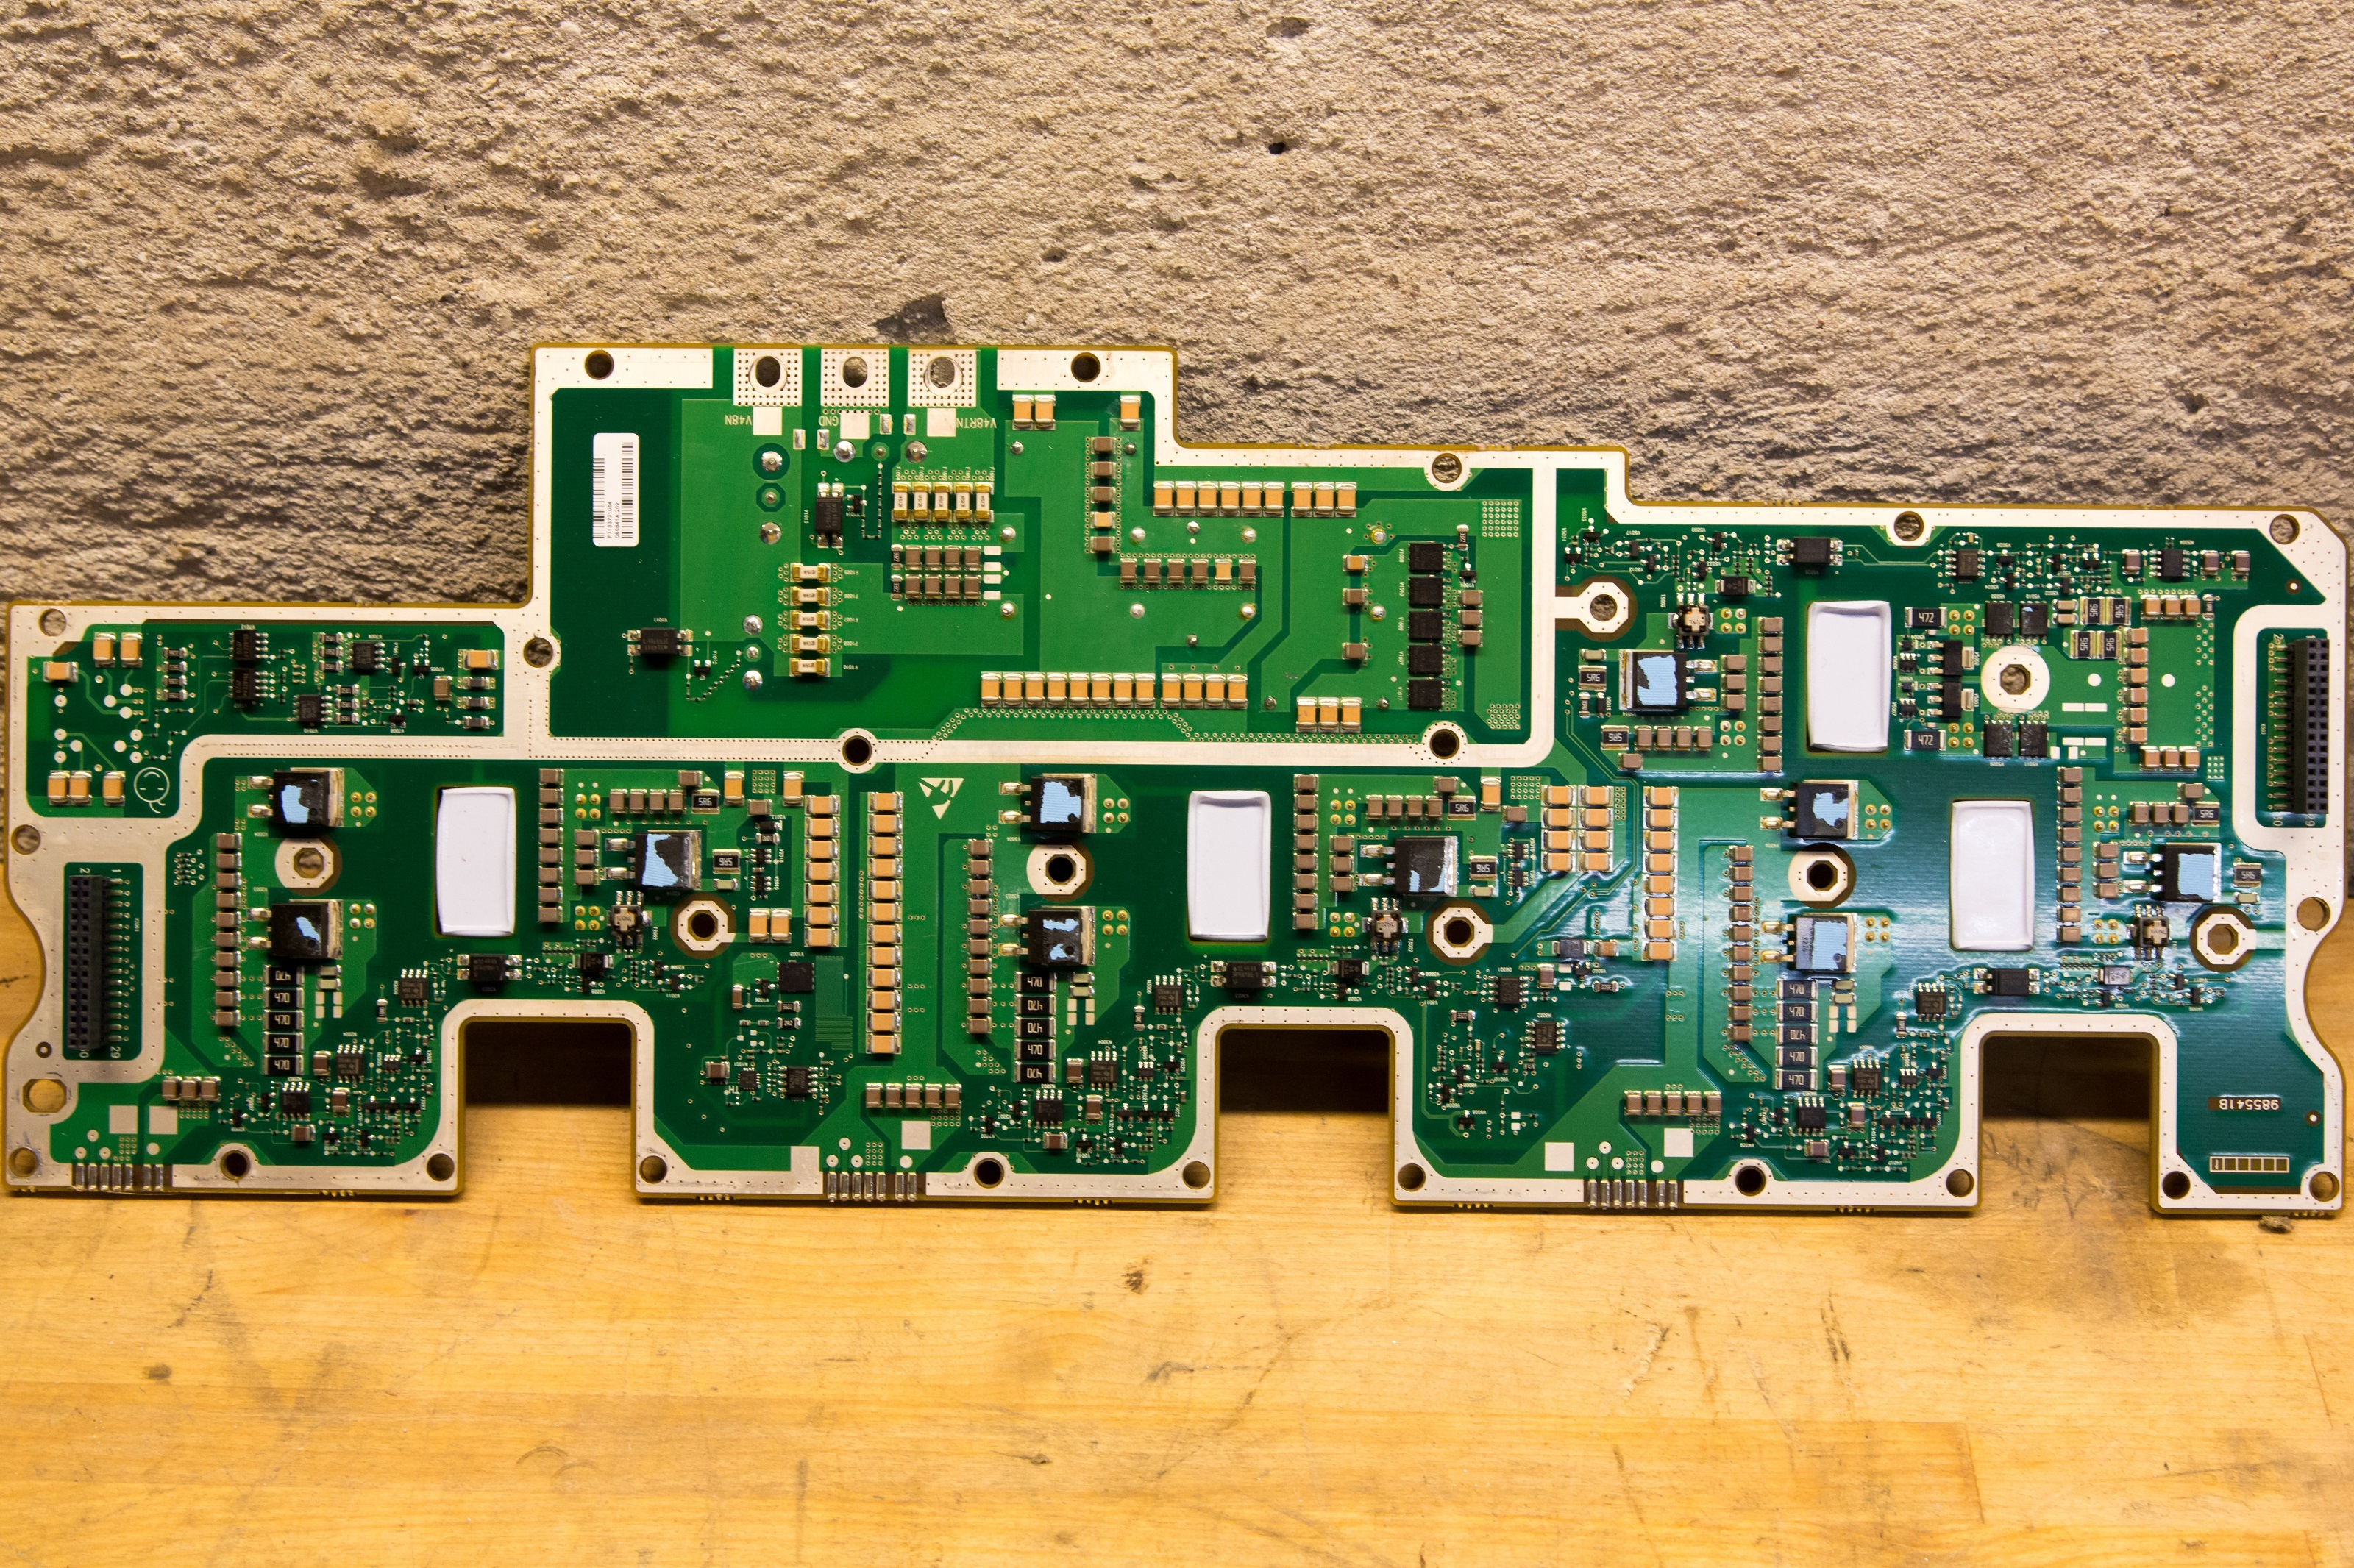 Nokia Siemens Networks Flexi FXEB base station amplifier